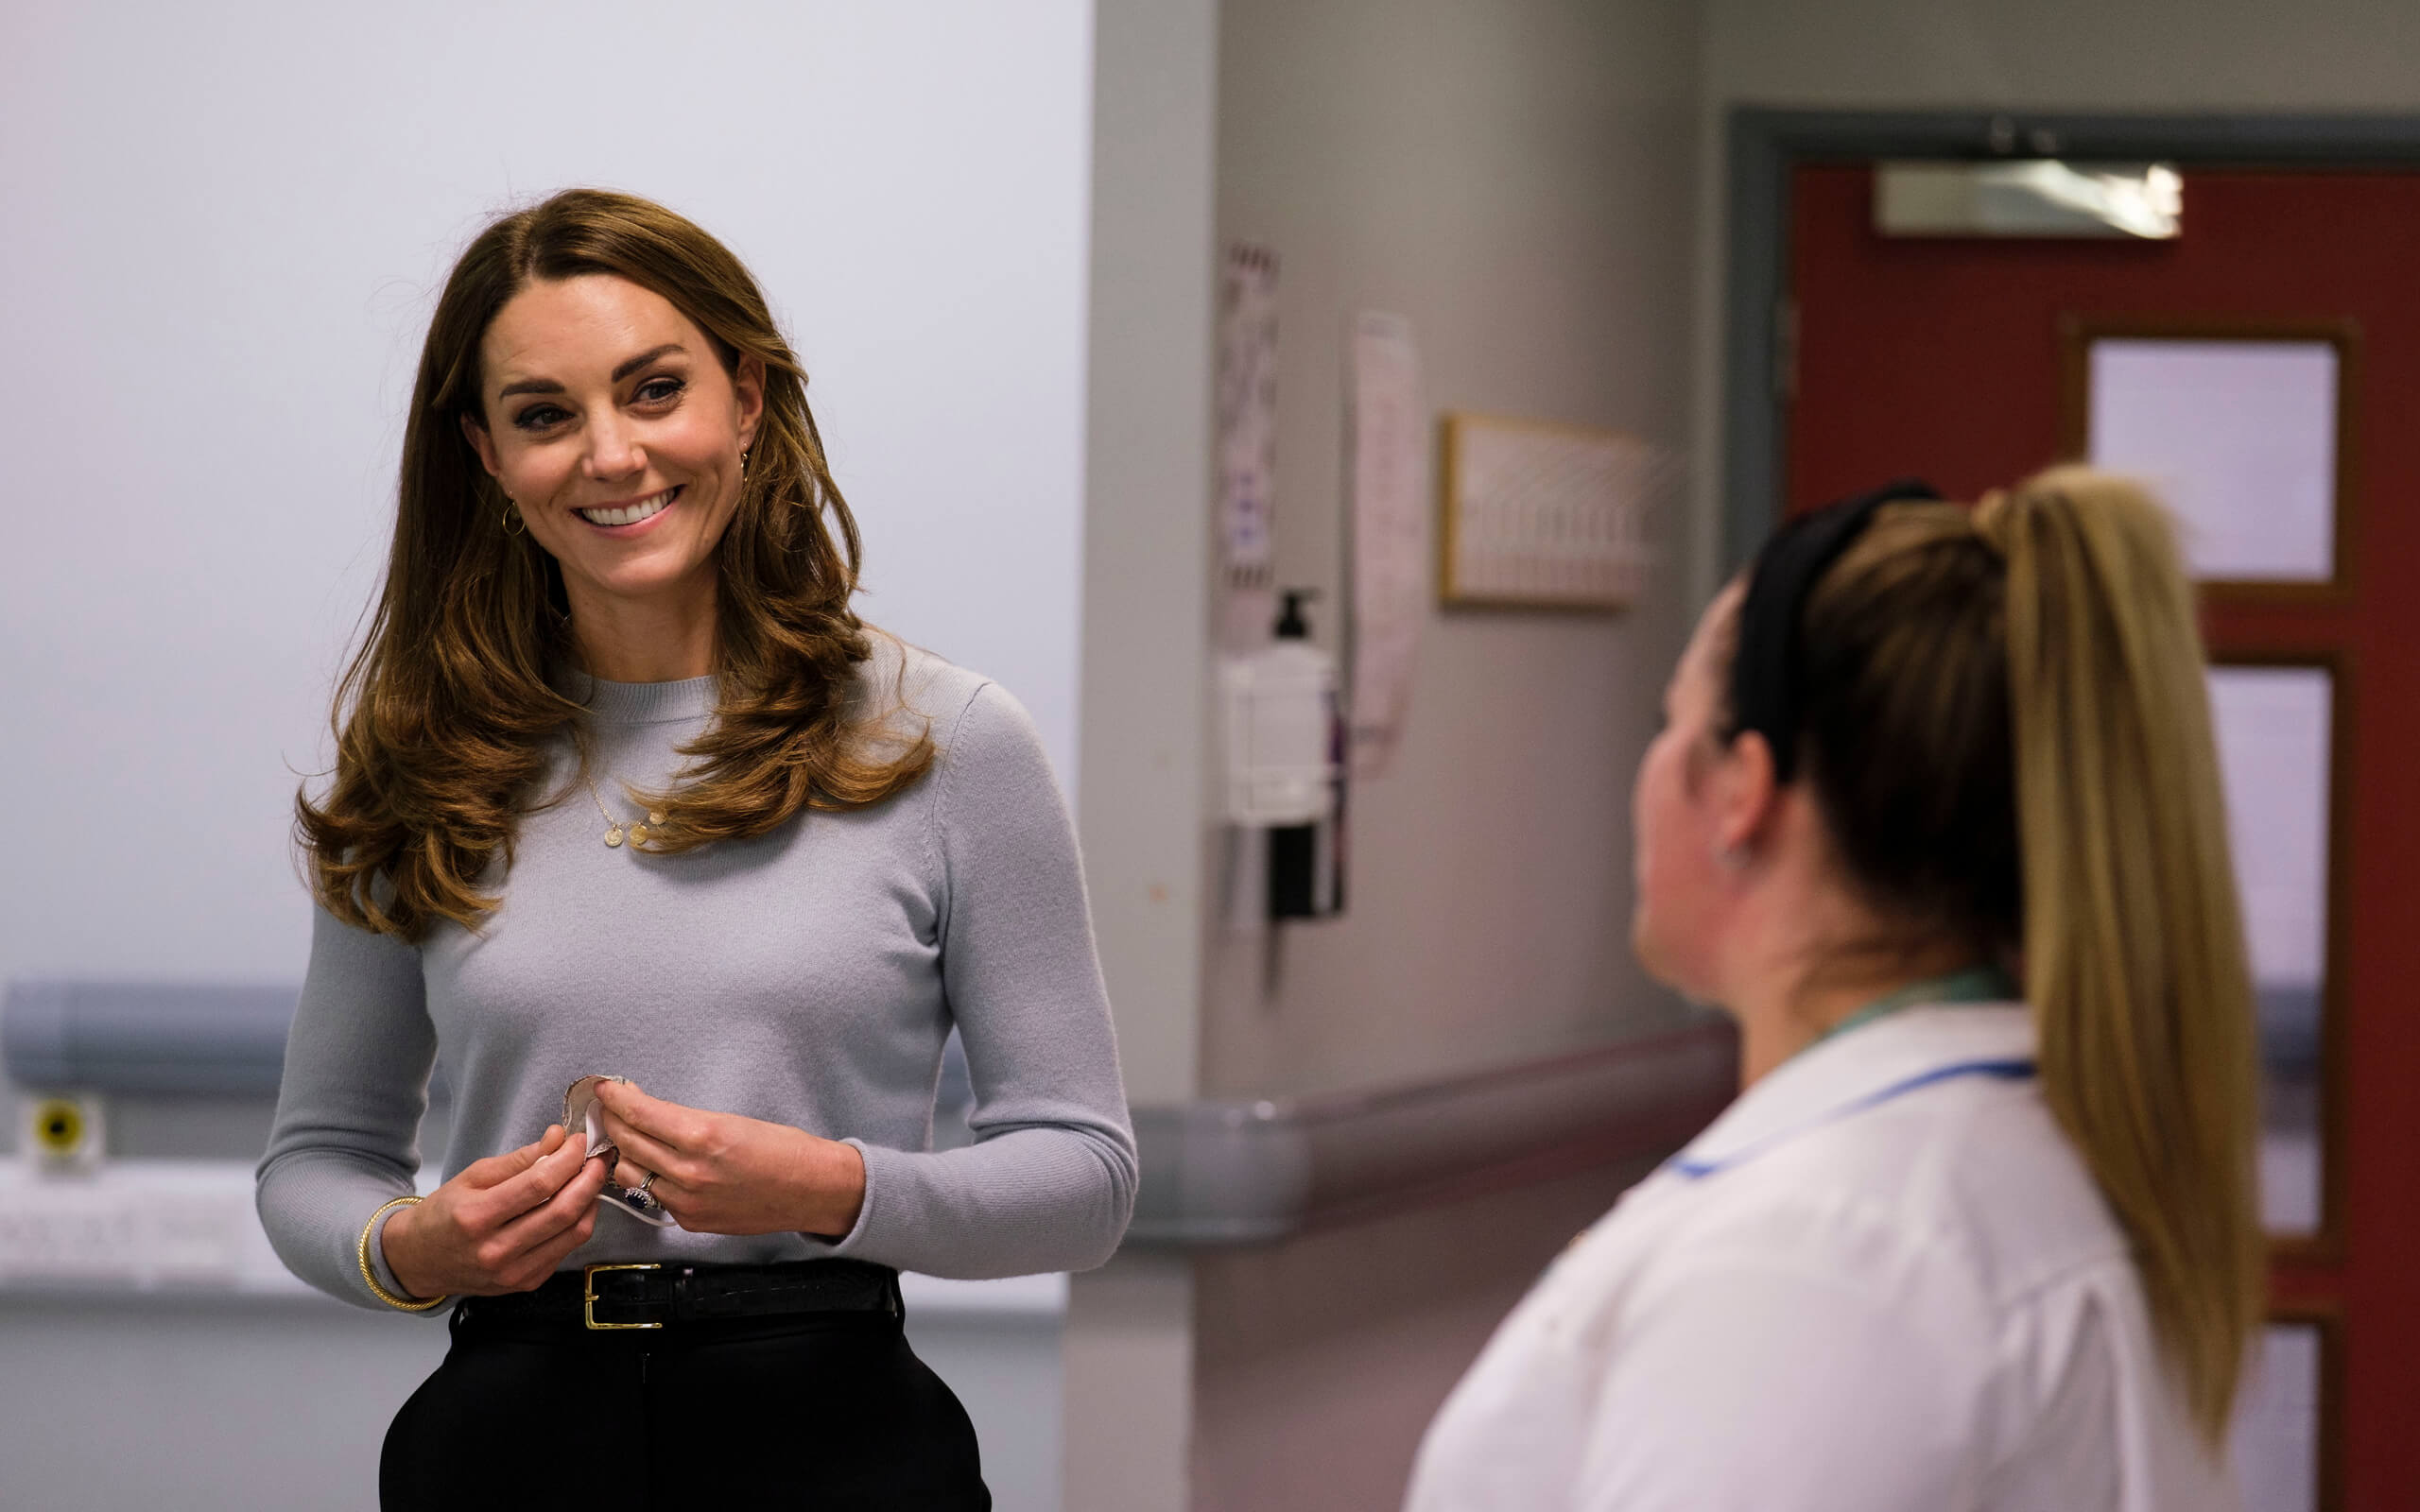 Her Royal Highness, The Duchess of Cambridge